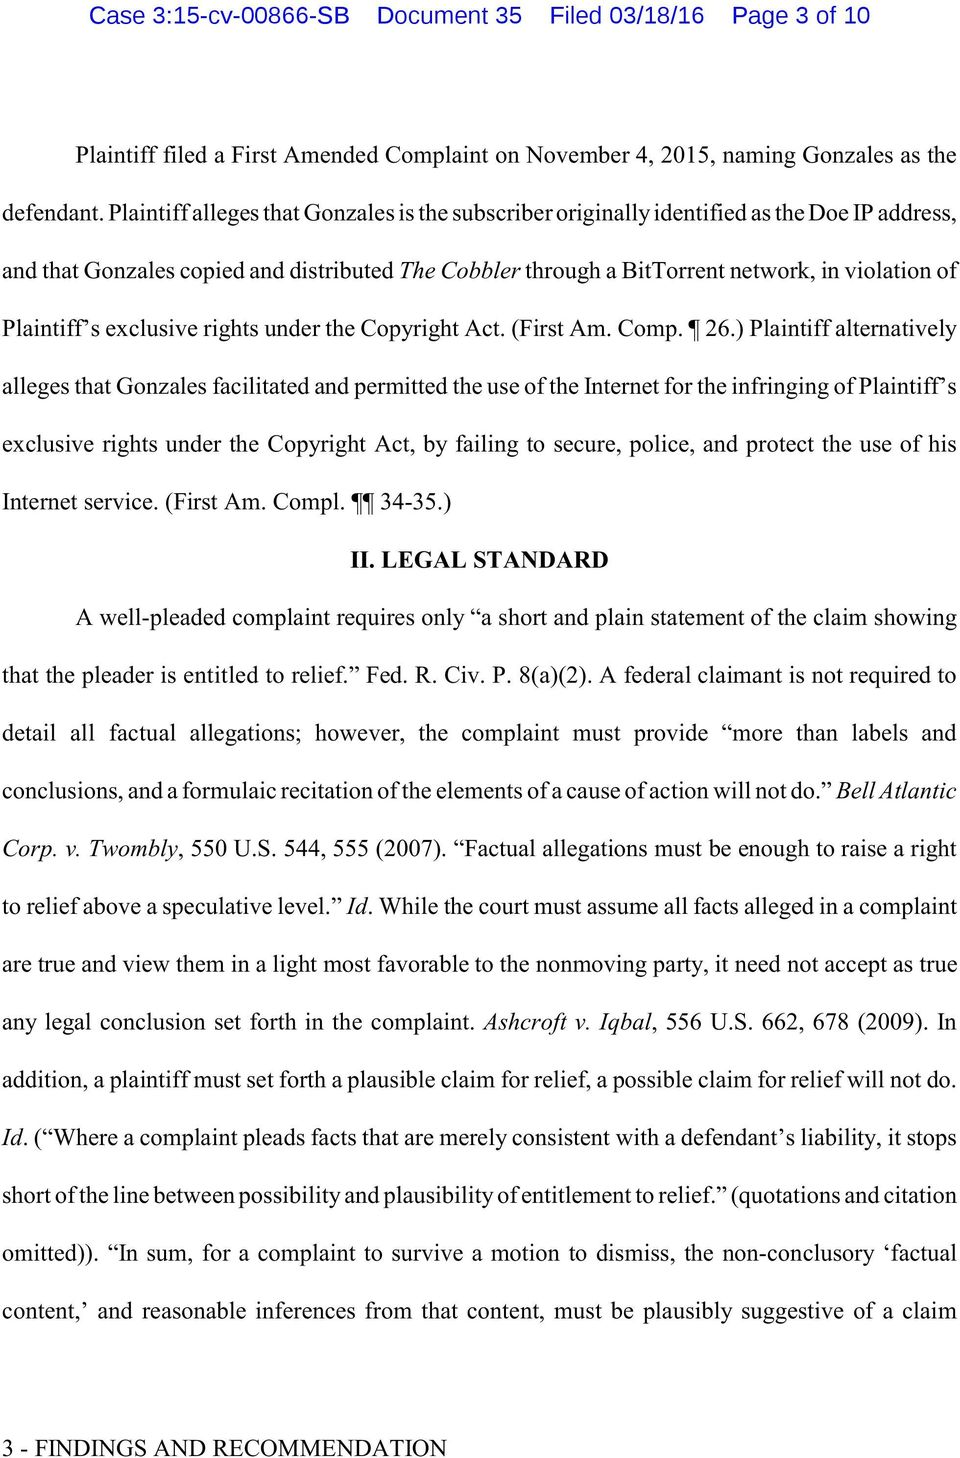 Plaintiff s exclusive rights under the Copyright Act. (First Am. Comp. 26.